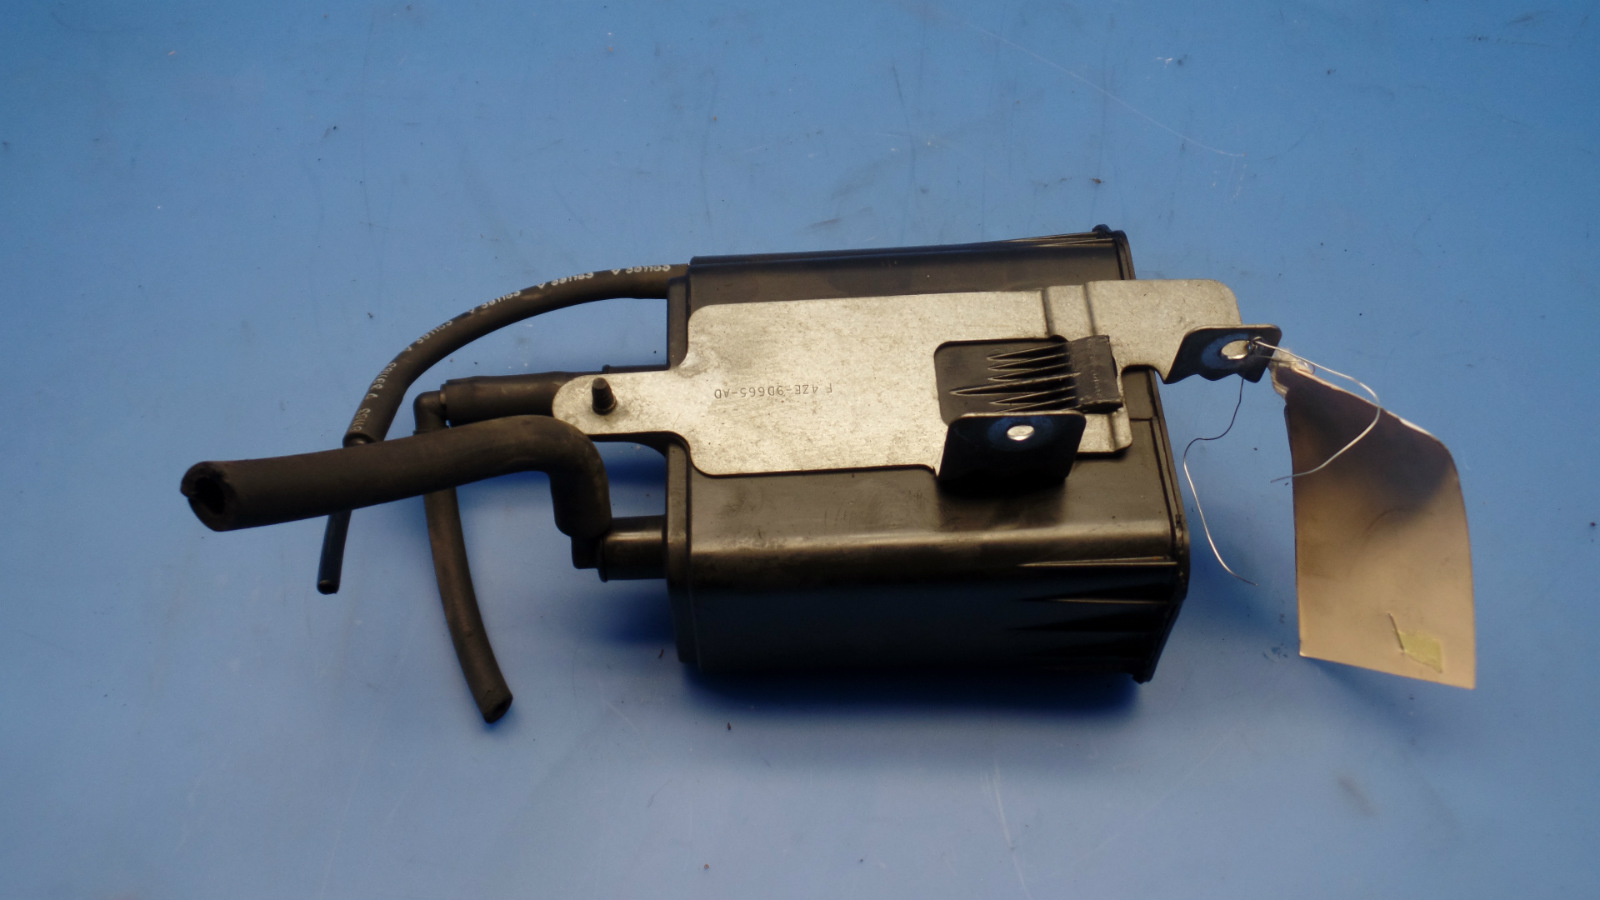 94 98 Ford Mustang Oem Fuel Gas Evaporator Vapor Canister P N F4ze Filter Removal This Is A Removed From 1996 Gt Convertible With Manual Transmission Should Fit But Please Double